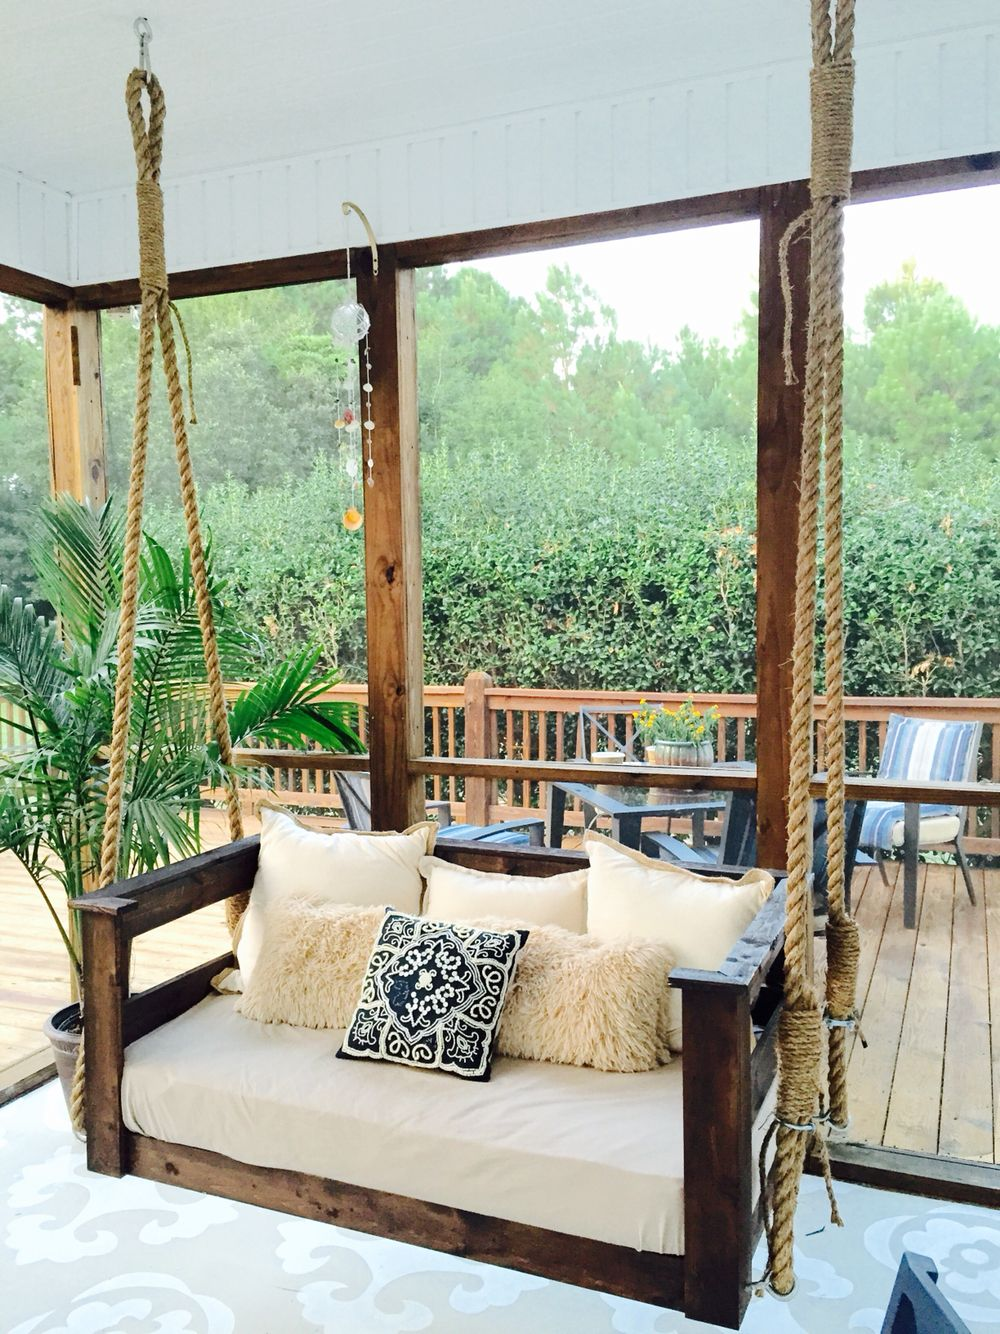 of with porch step ideas swing hanging deck floor bed kids beauty add on beautiful your the wood design also glass plus maximize and or planter bedroom to patio box pergola room astonishing chimney just outdoor rooftop